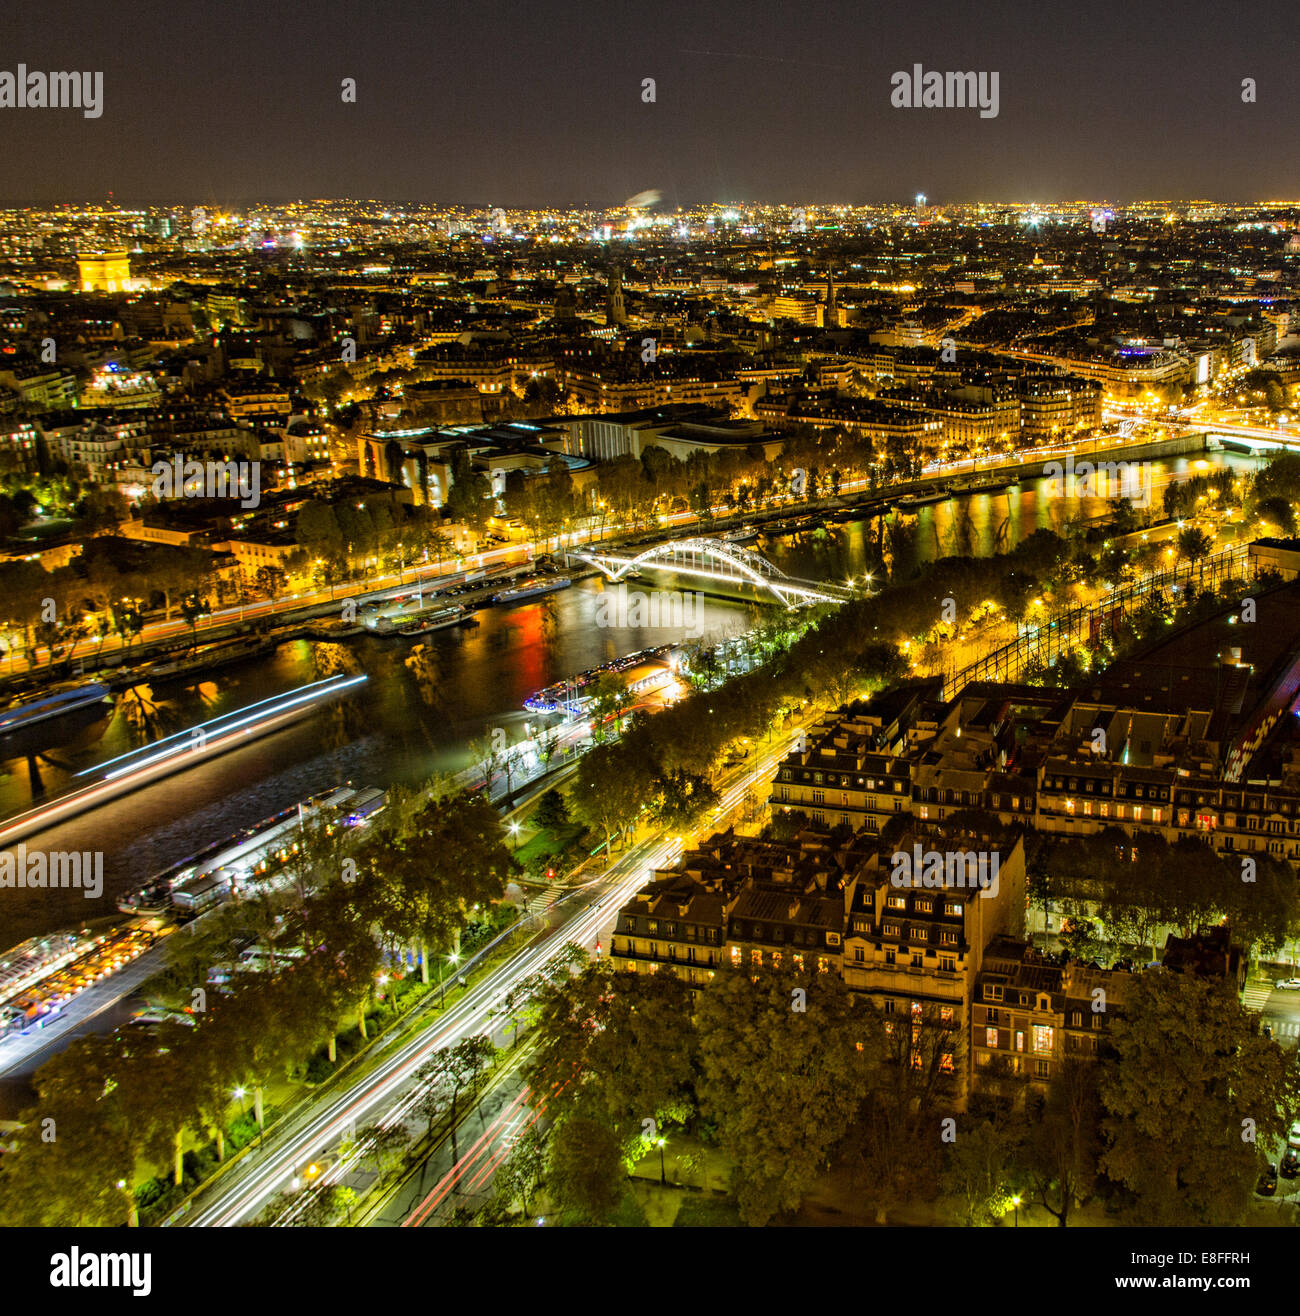 France, Paris, Aerial view of city at night - Stock Image